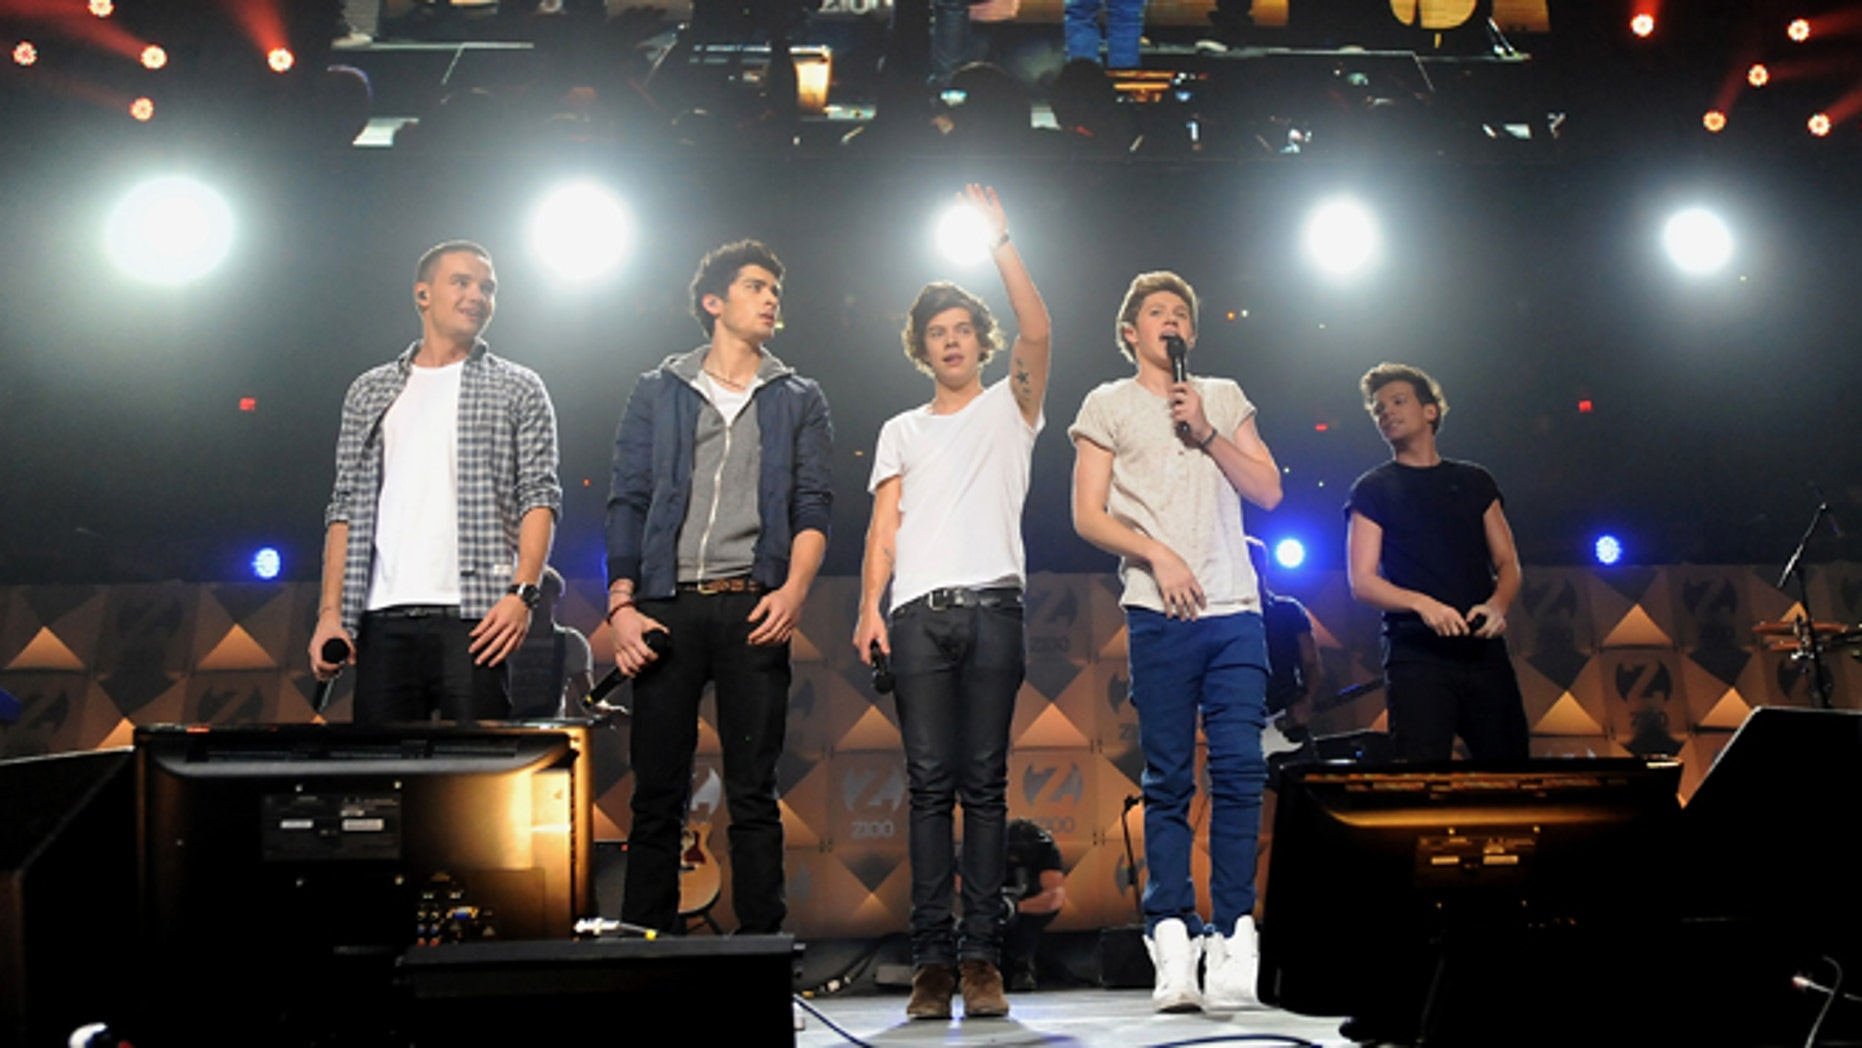 Dec. 7, 2012: One Direction perform at Z100's Jingle Ball 2012 presented by Aeropostale at Madison Square Garden in New York.